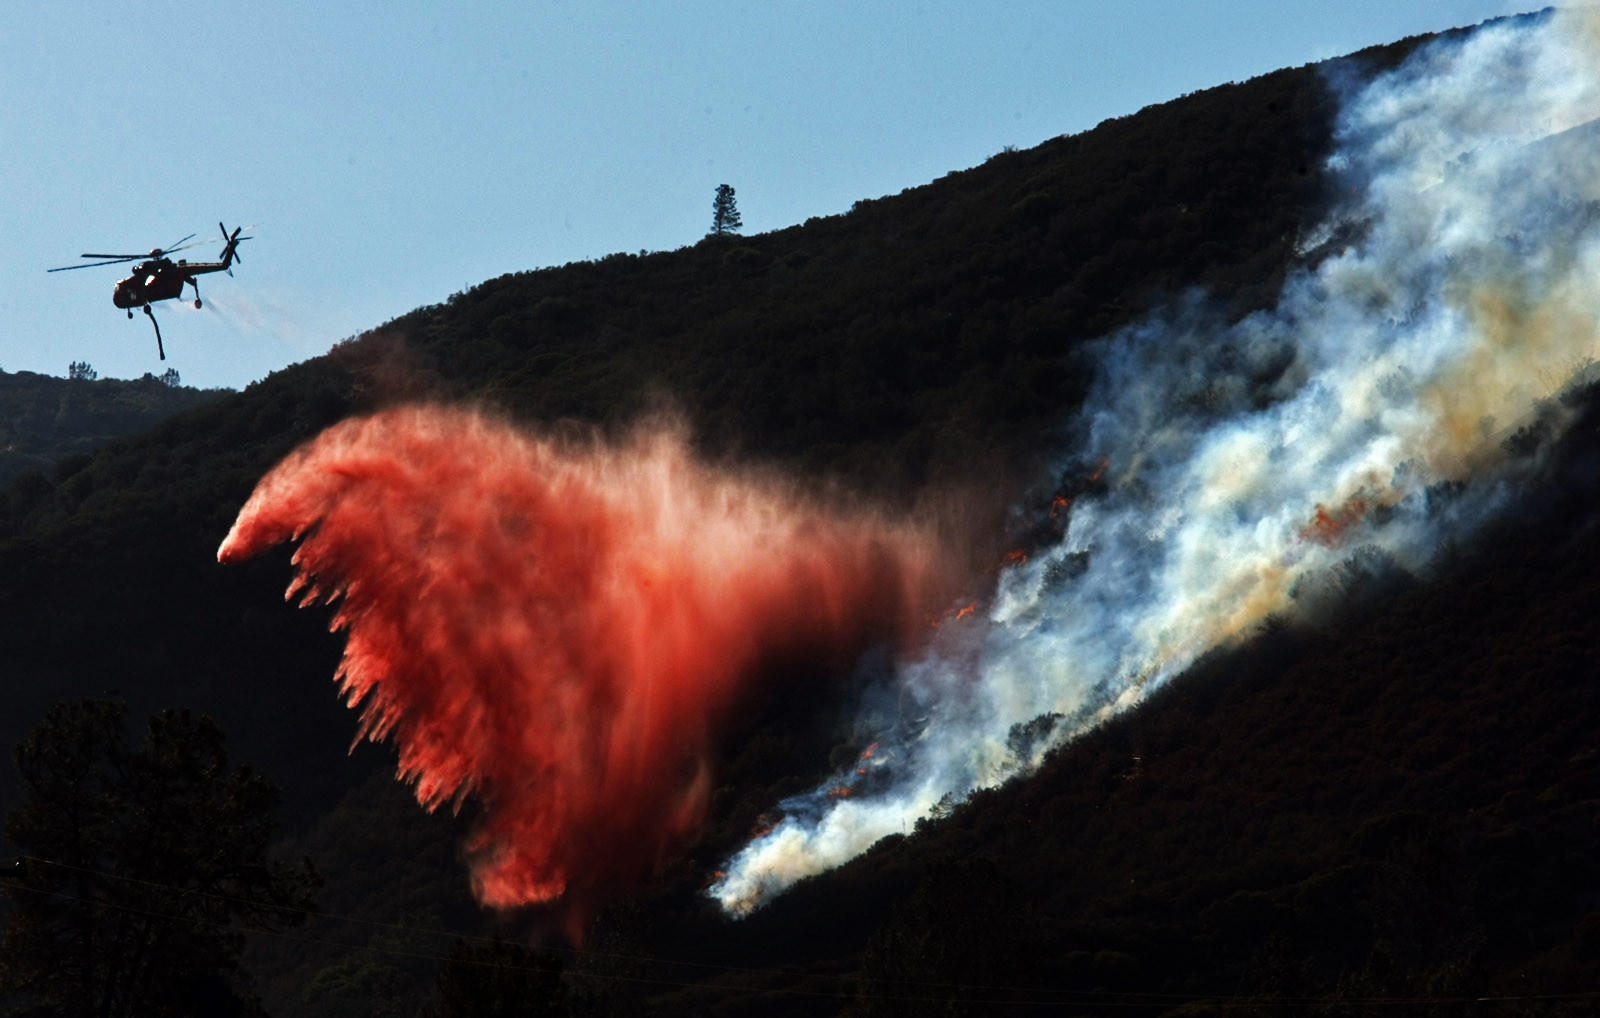 A helicopter drops fire retardant on a ridge near Lake Hughes where the Powerhouse Fire burned last summer. Plaintiffs alleging they suffered damages in the fire are suing the L.A. County DWP.